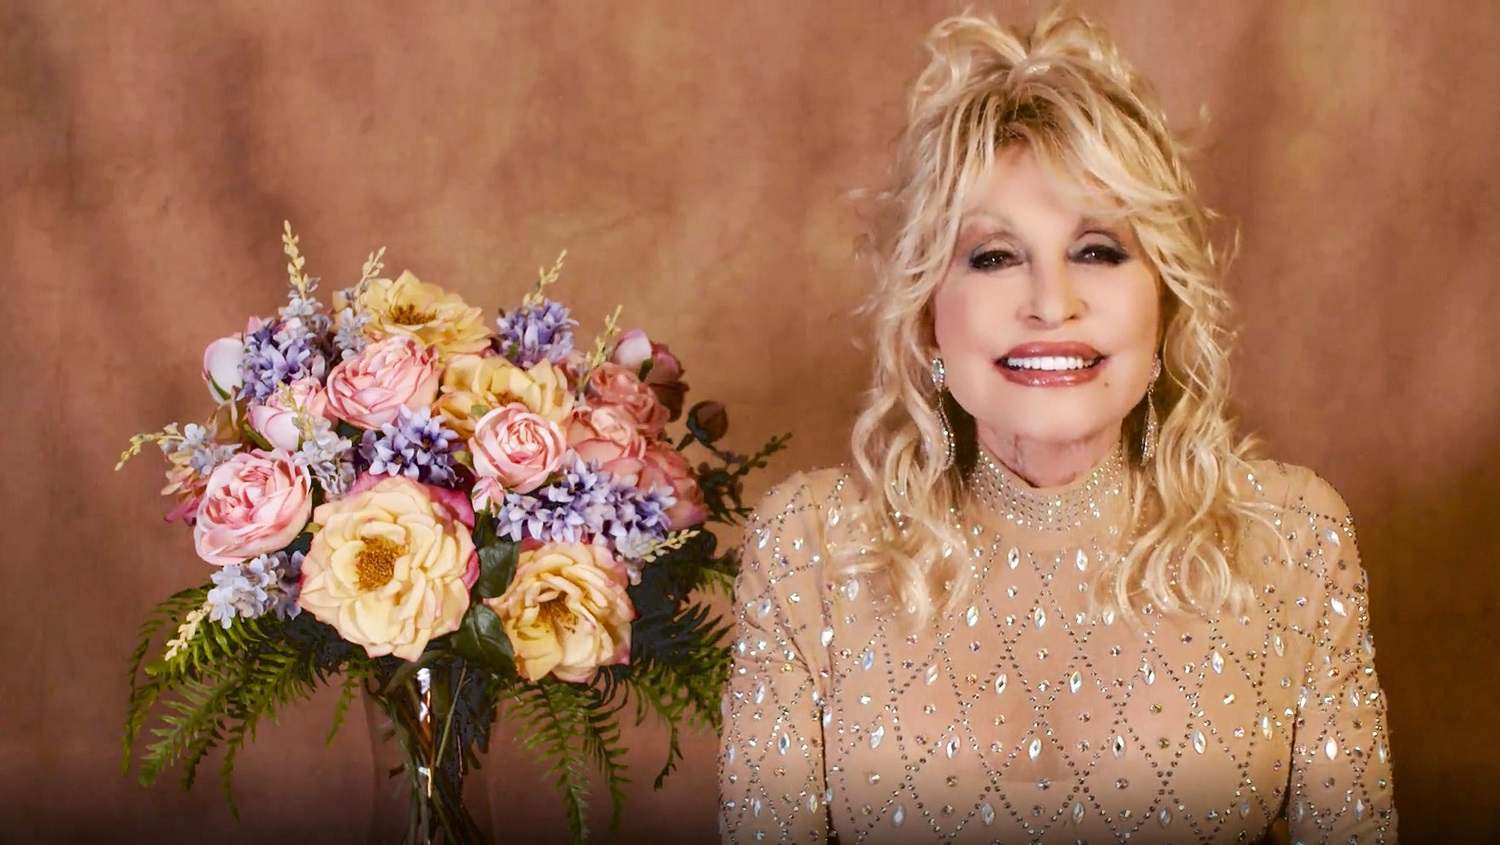 Dolly Parton speaks at the 56th Academy of Country Music Awards on April 18, 2021 in Nashville, Tennessee.